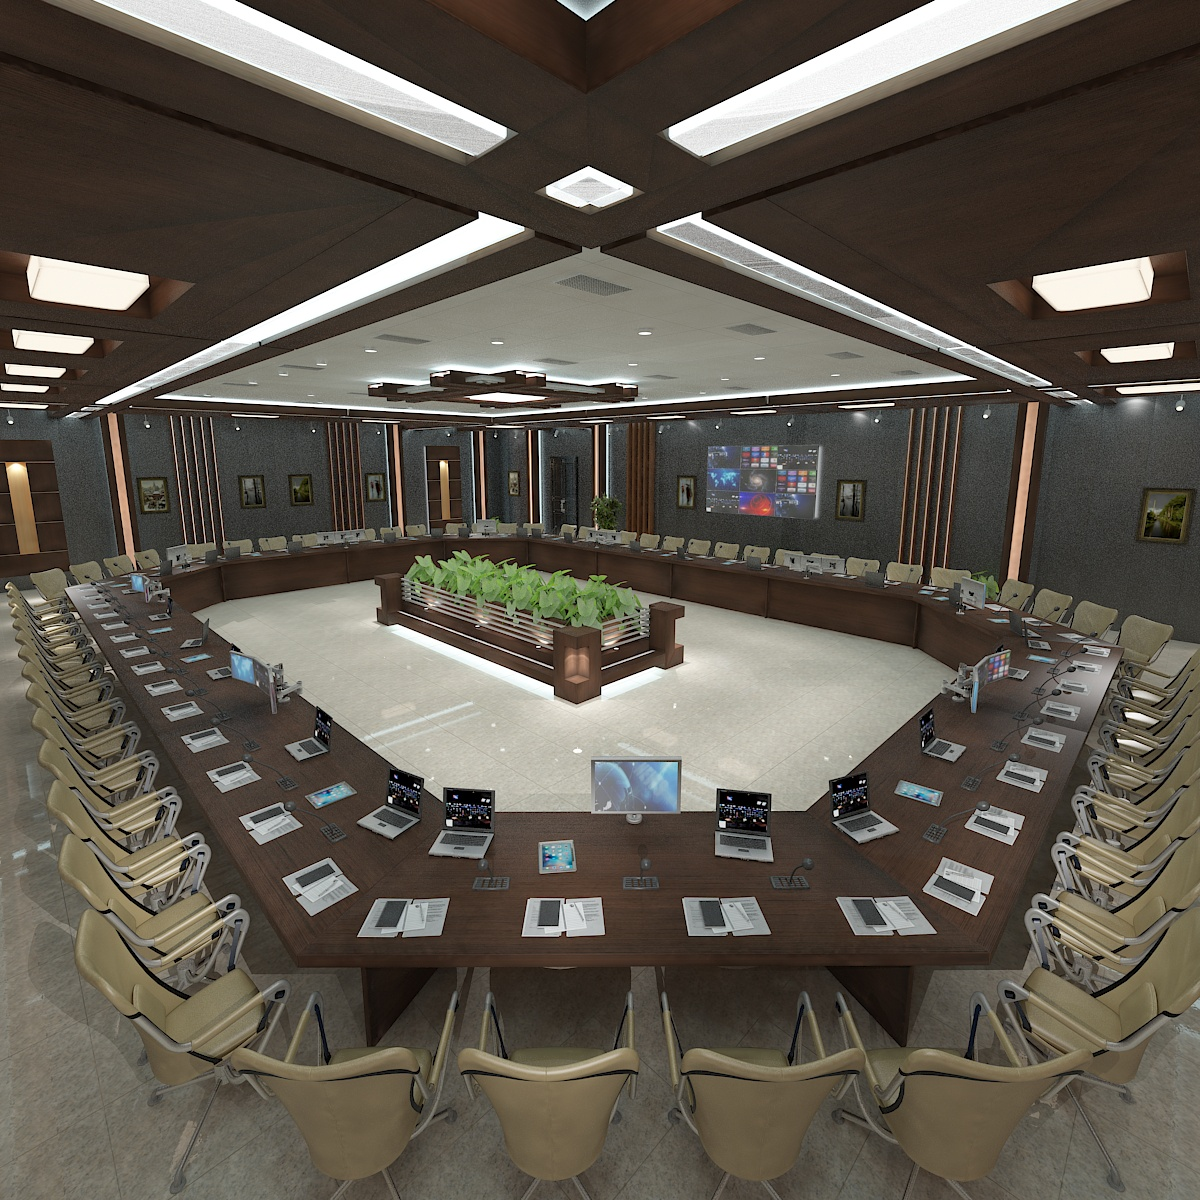 meeting room 1 3d model 3ds max dxf dwg 288110